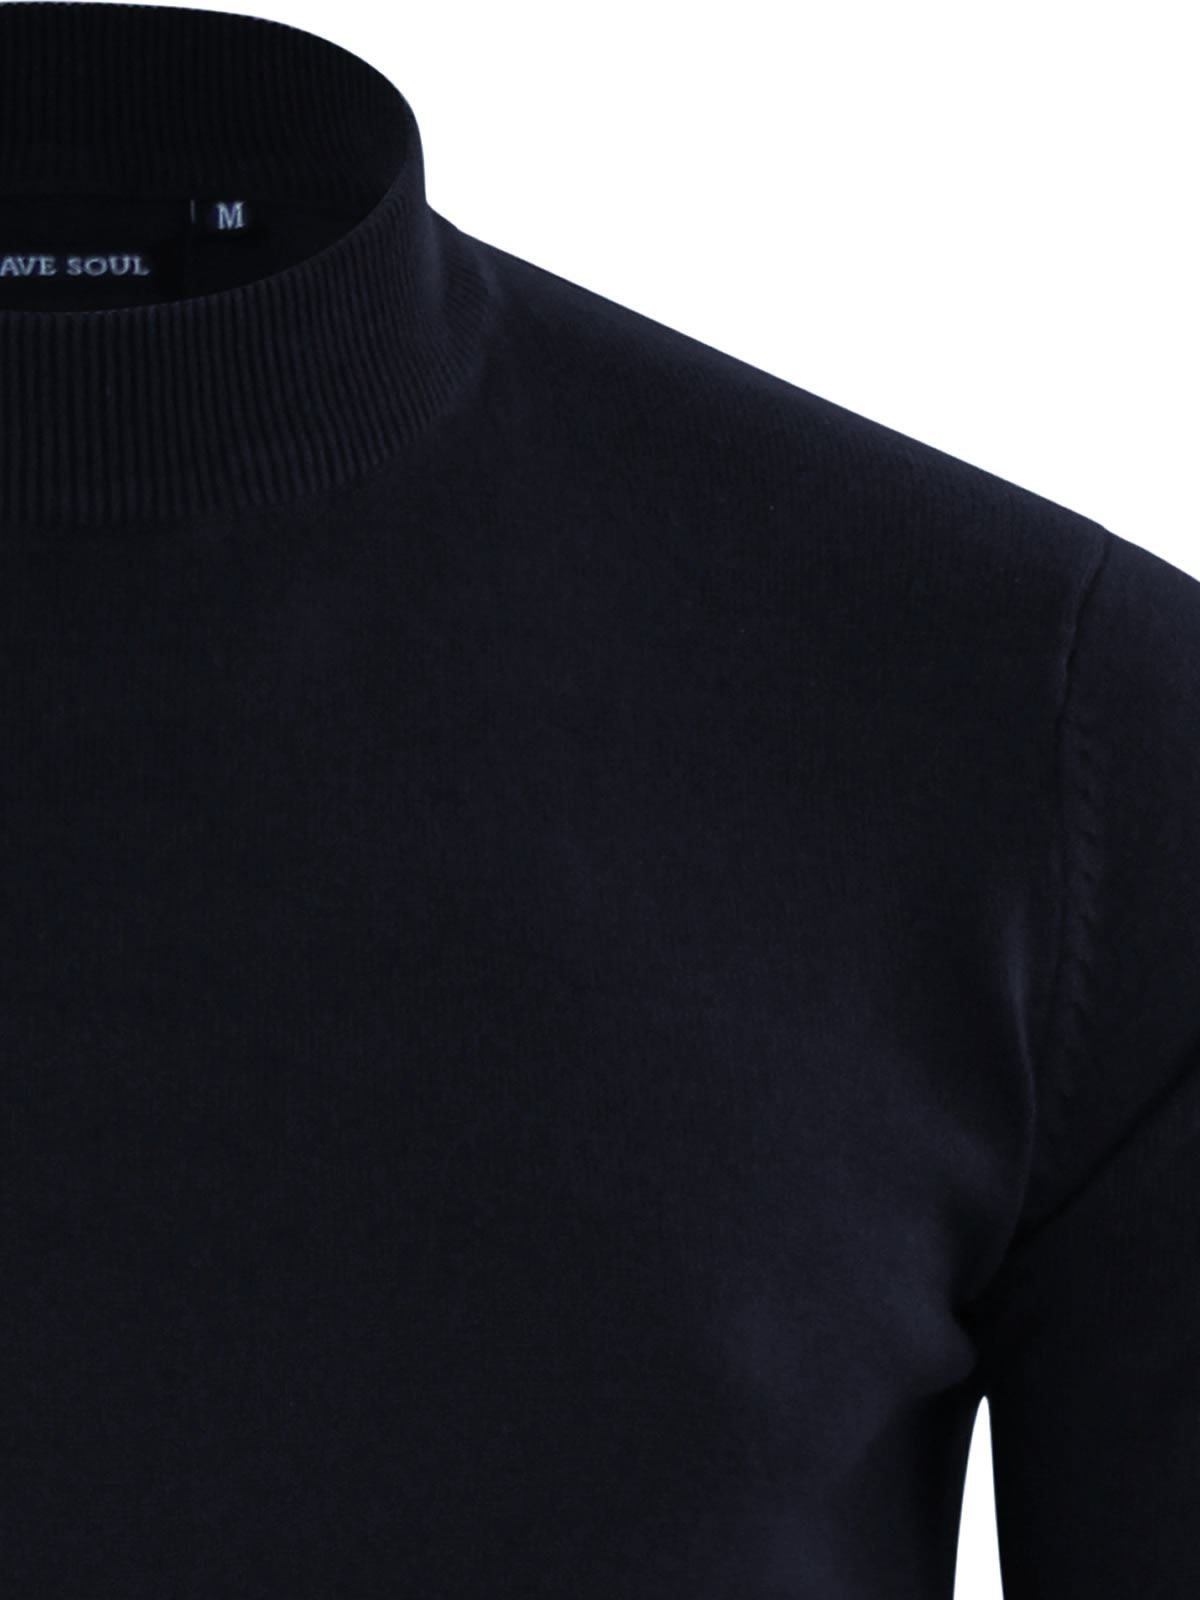 Mens-Jumper-Brave-Soul-Turtle-Neck-Cotton-Pull-Over-Sweater thumbnail 24